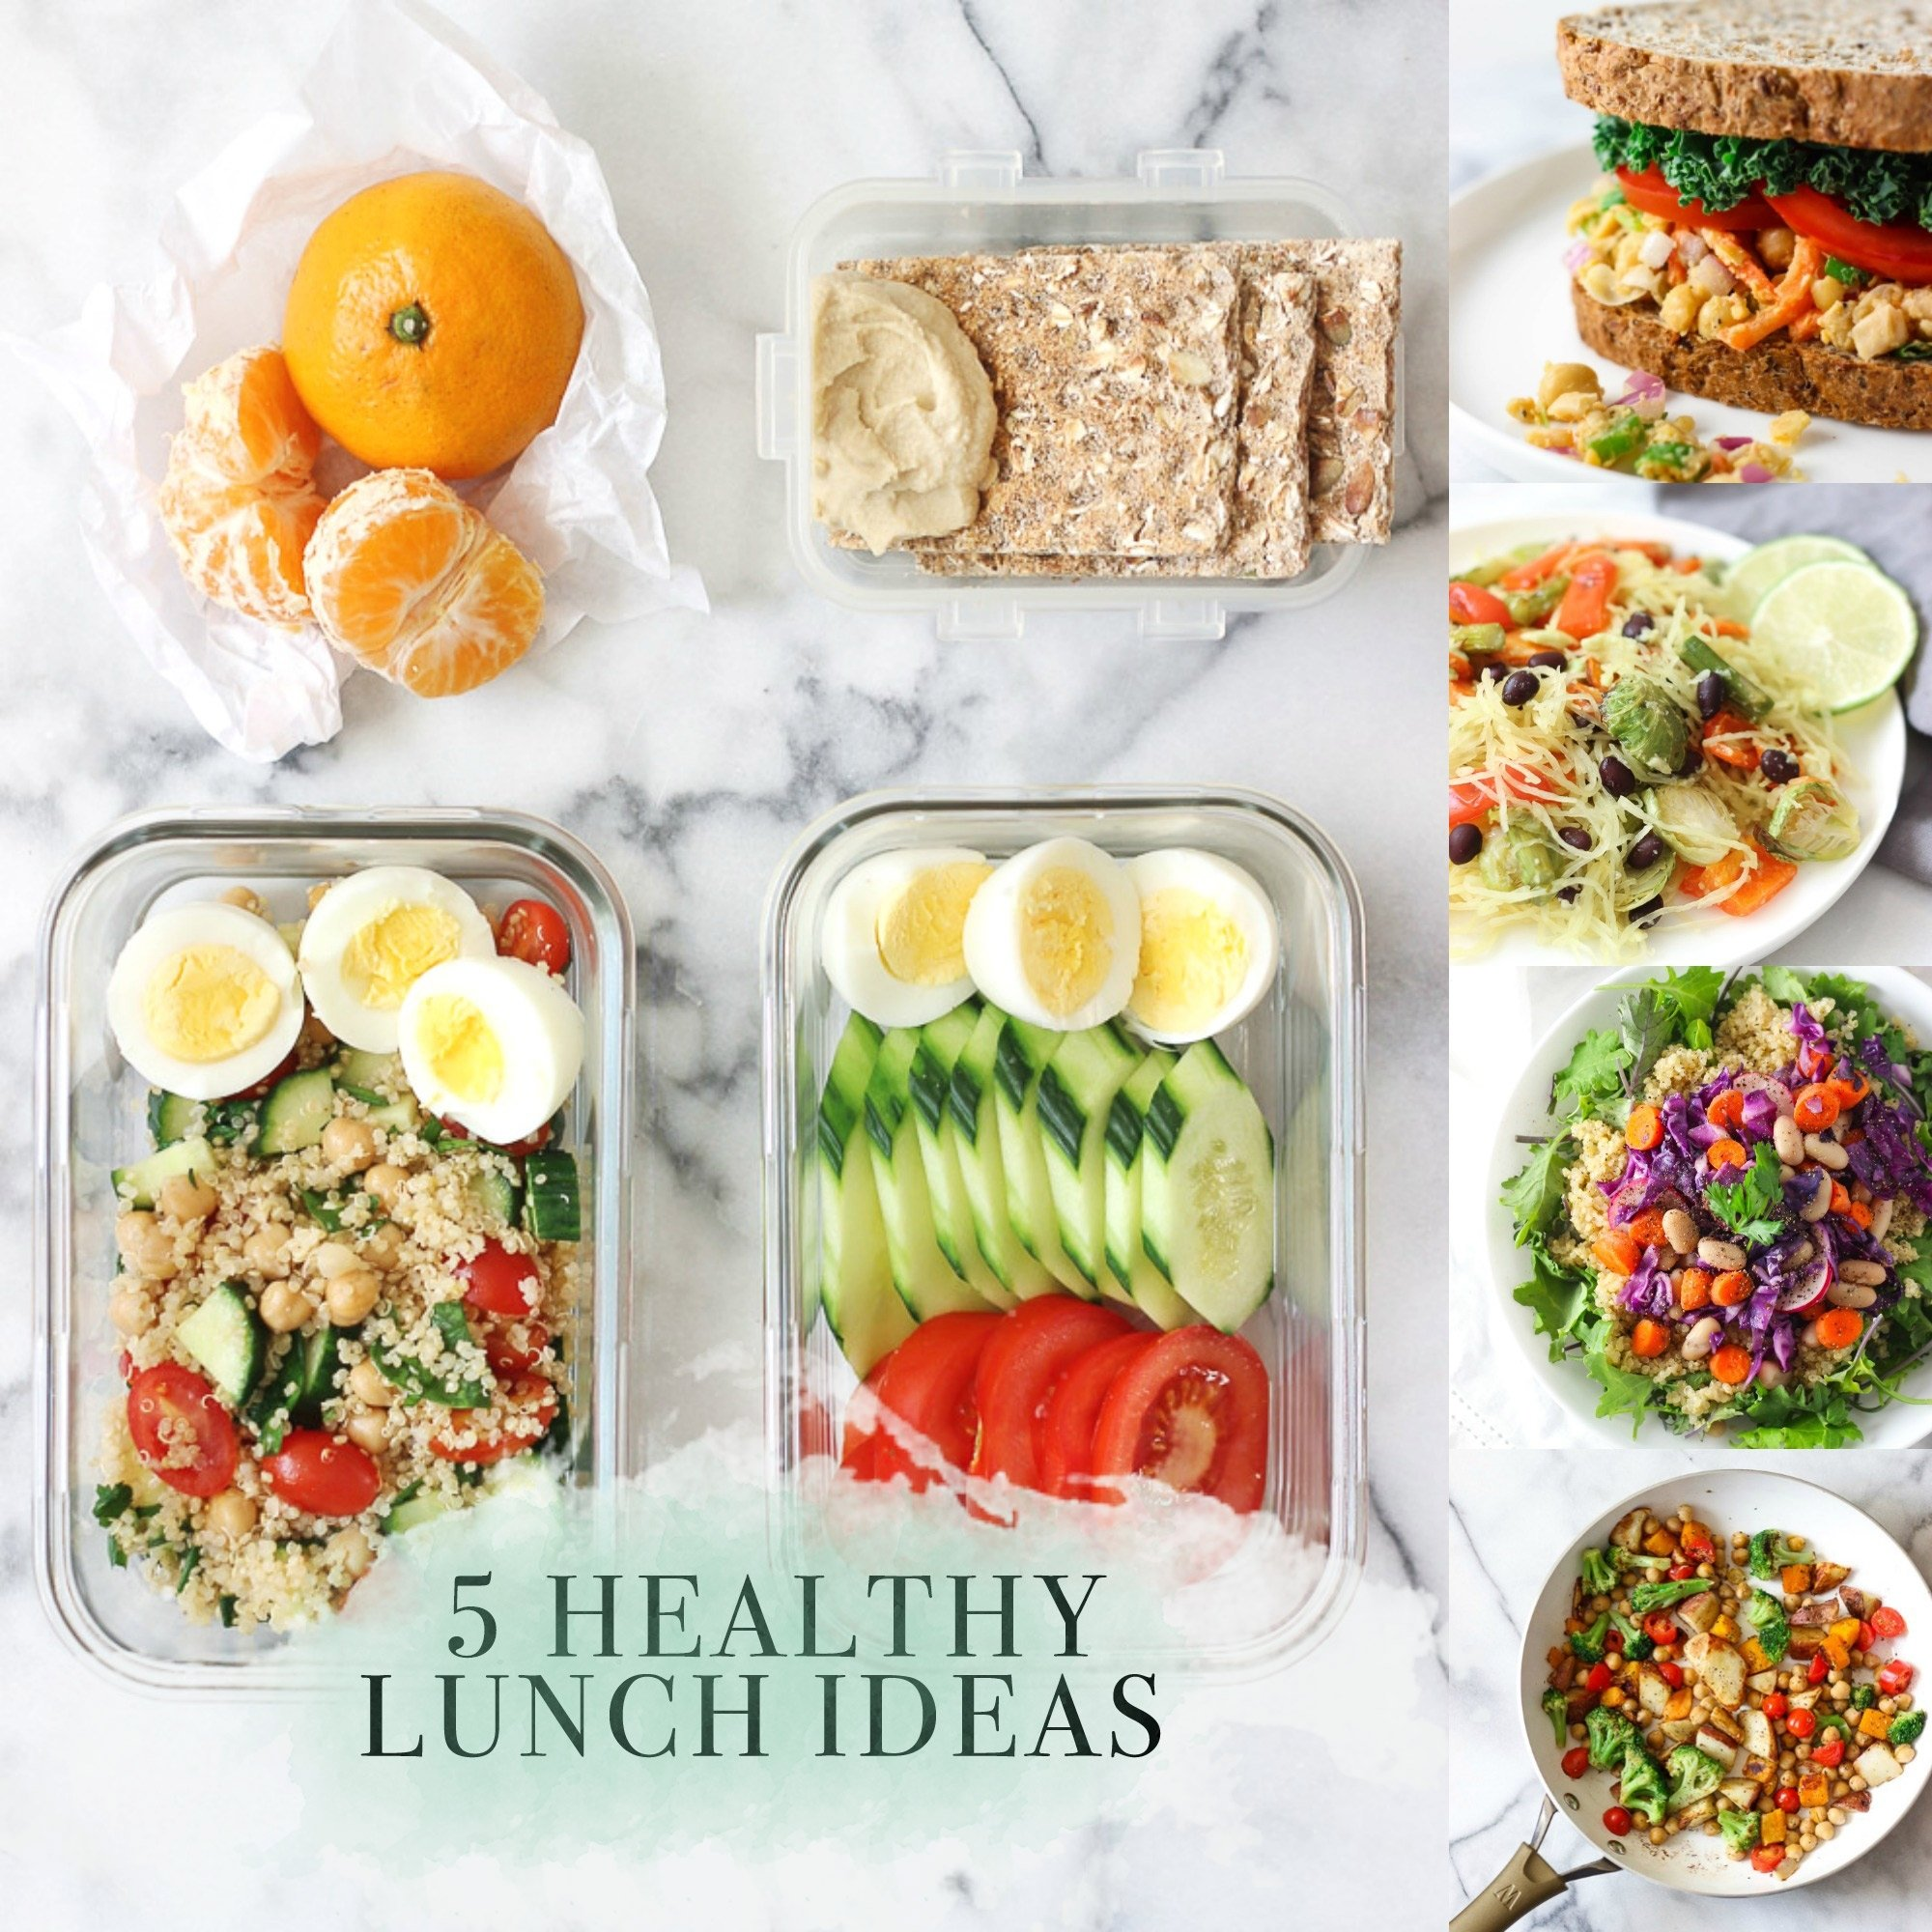 10 Most Recommended Ideas For Lunch At Work lunch archives page 3 of 8 exploring healthy foods 3 2020